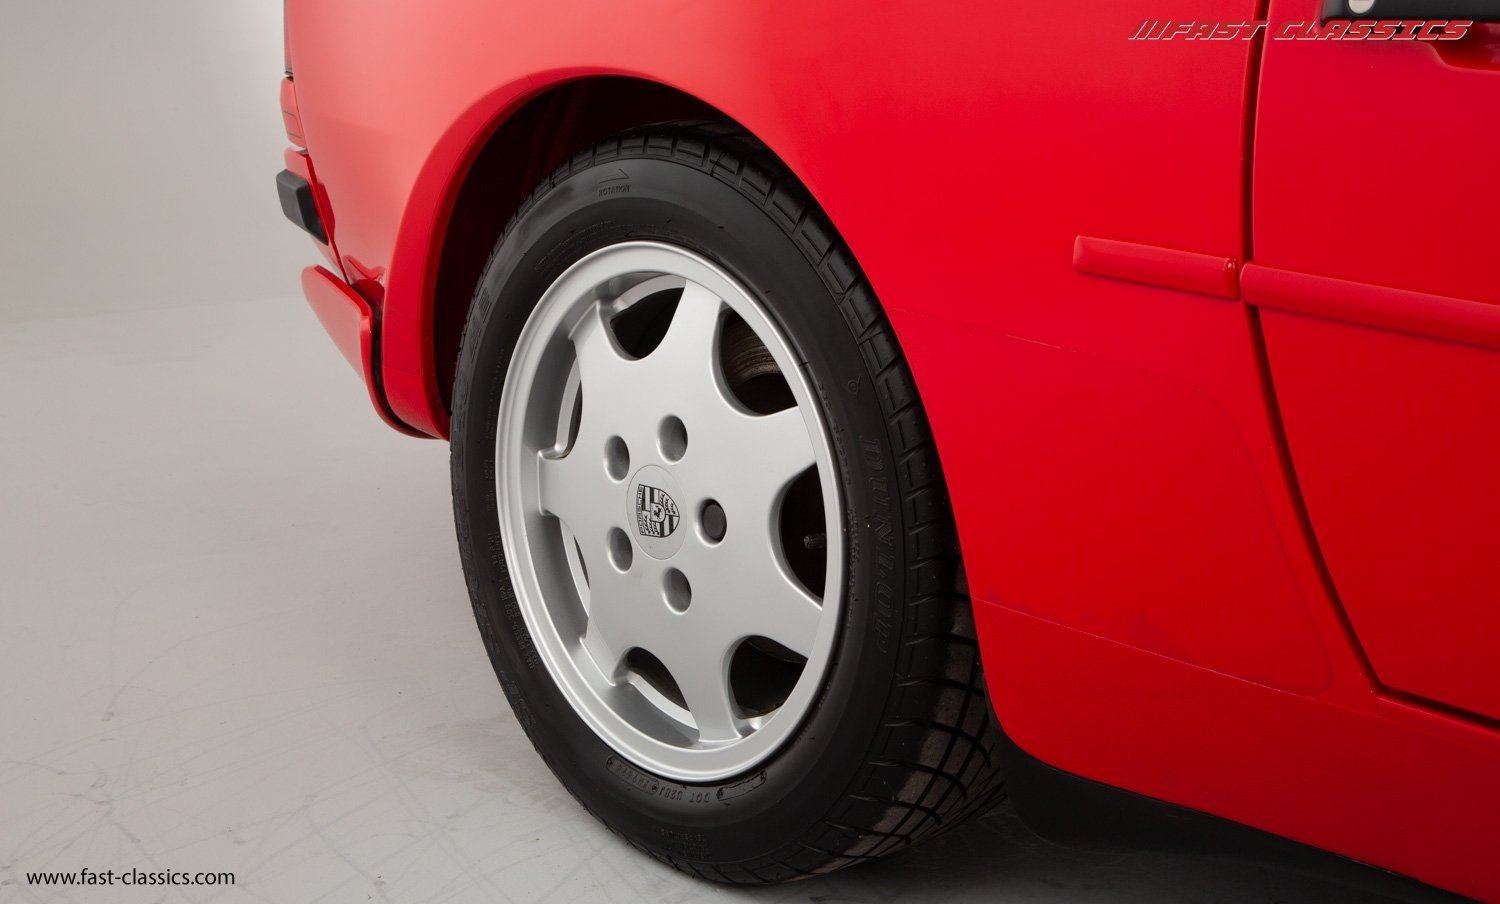 1990 PORSCHE 944 S2 // STUNNING GUARDS RED // 27K MILES // FAMILY For Sale (picture 20 of 23)